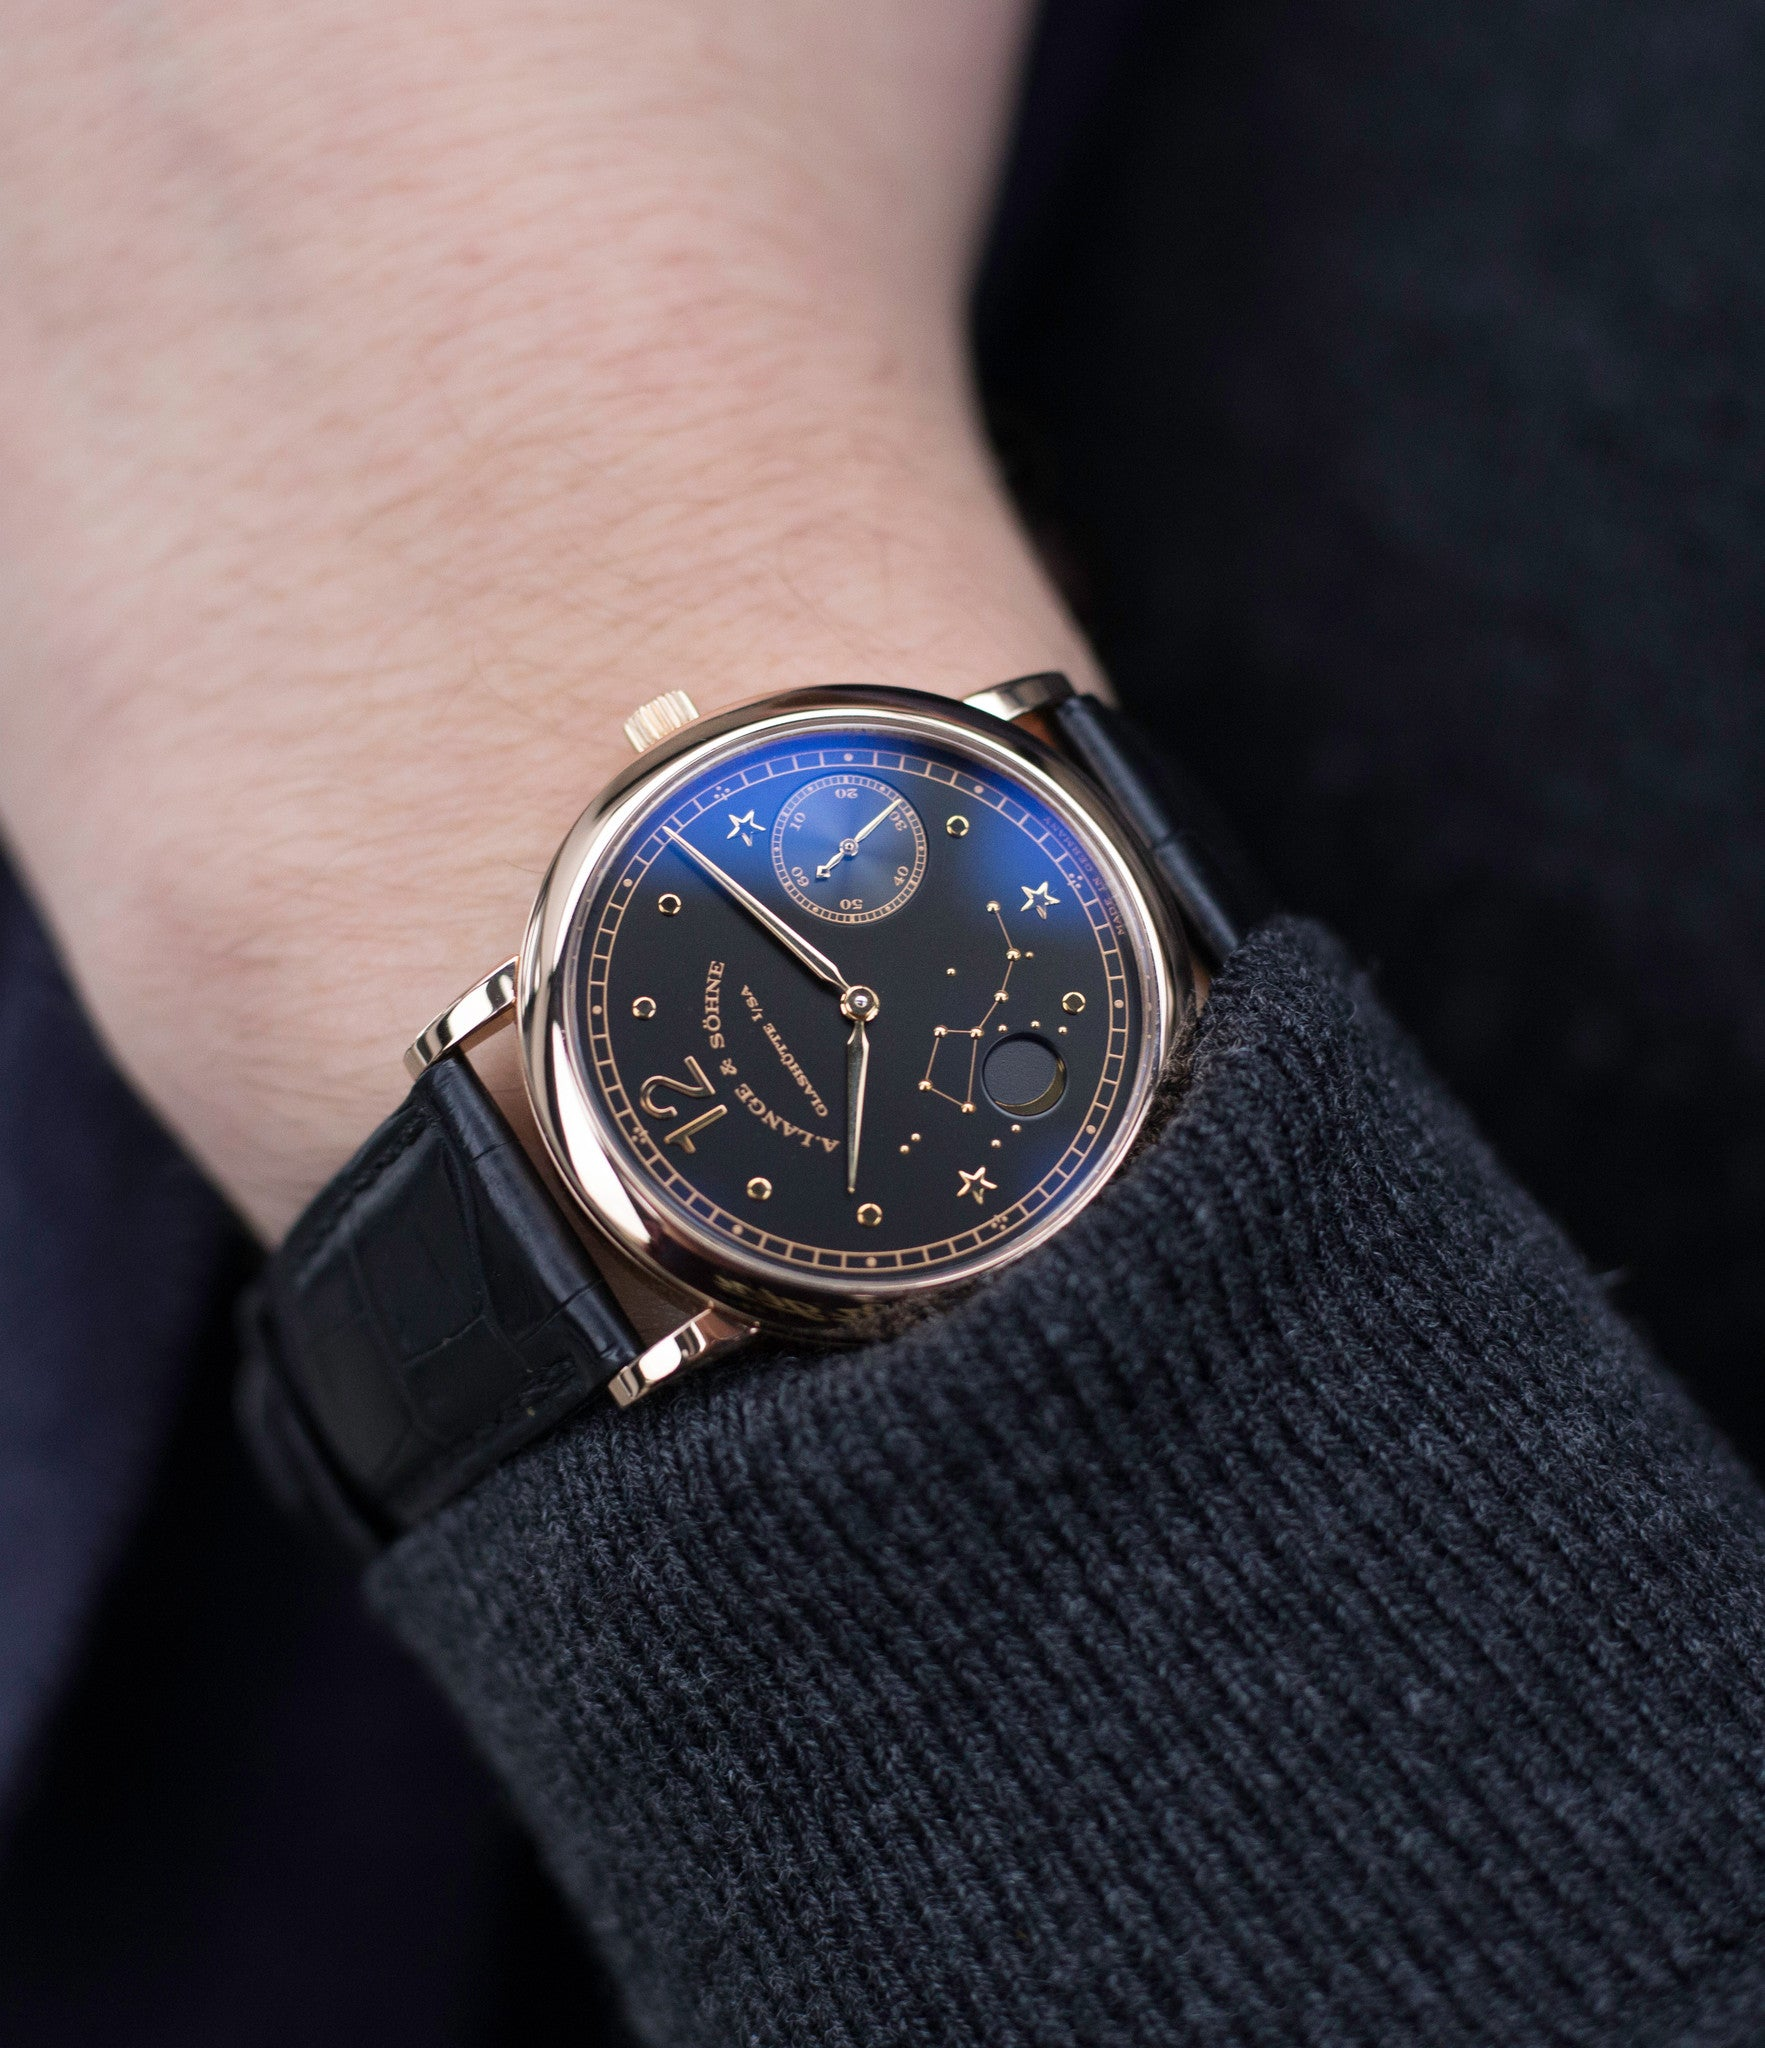 rare dress watch buy rare A. Lange & Söhne 1815 Moonphase Hommage a Emil Lange 1849-1922 rose gold black dial watch at A Collected Man curated platform of rare and vintage watches